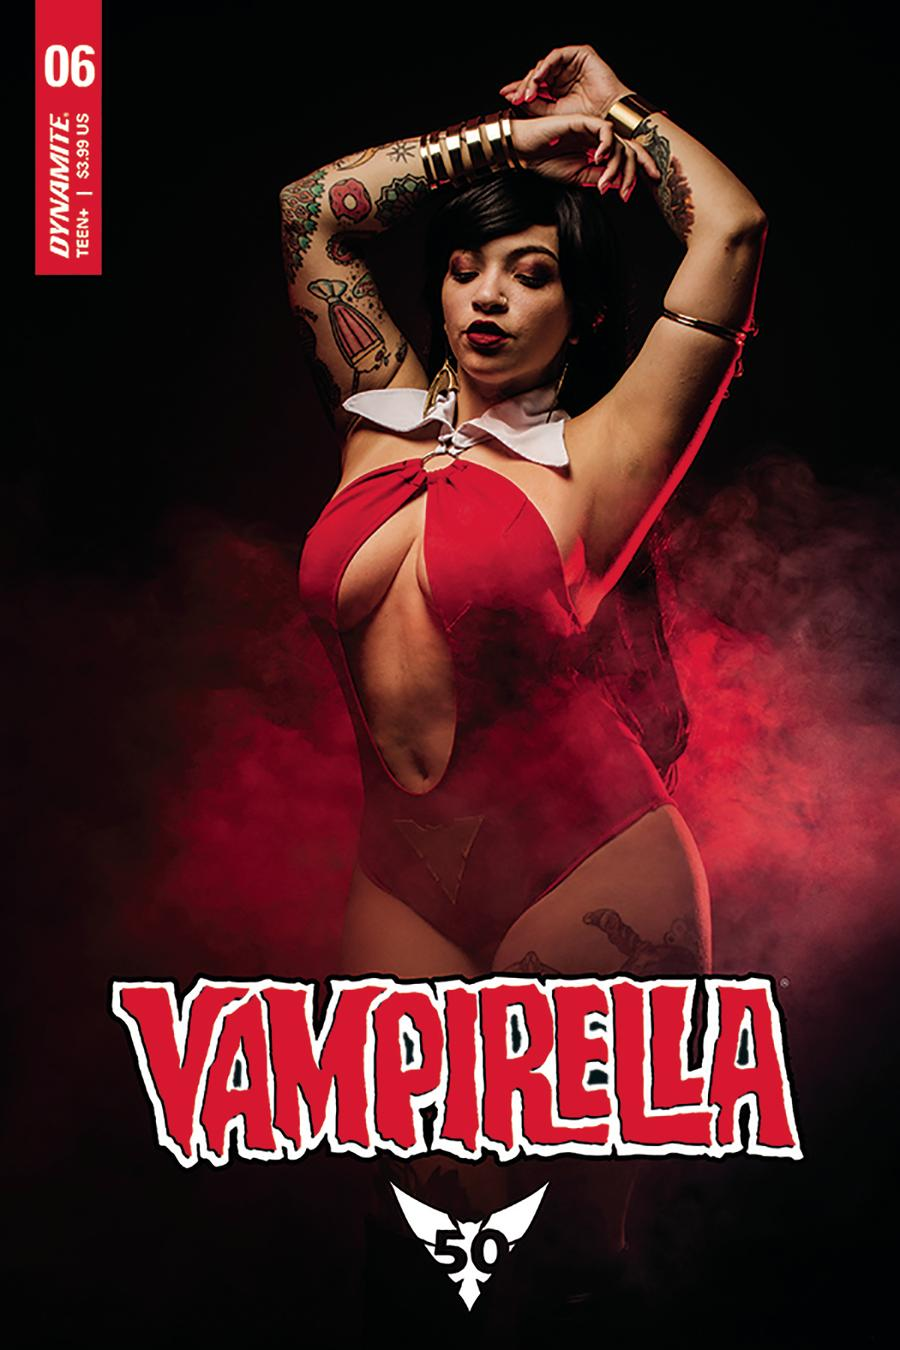 Vampirella Vol 8 #6 Cover E Variant Cosplay Photo Cover